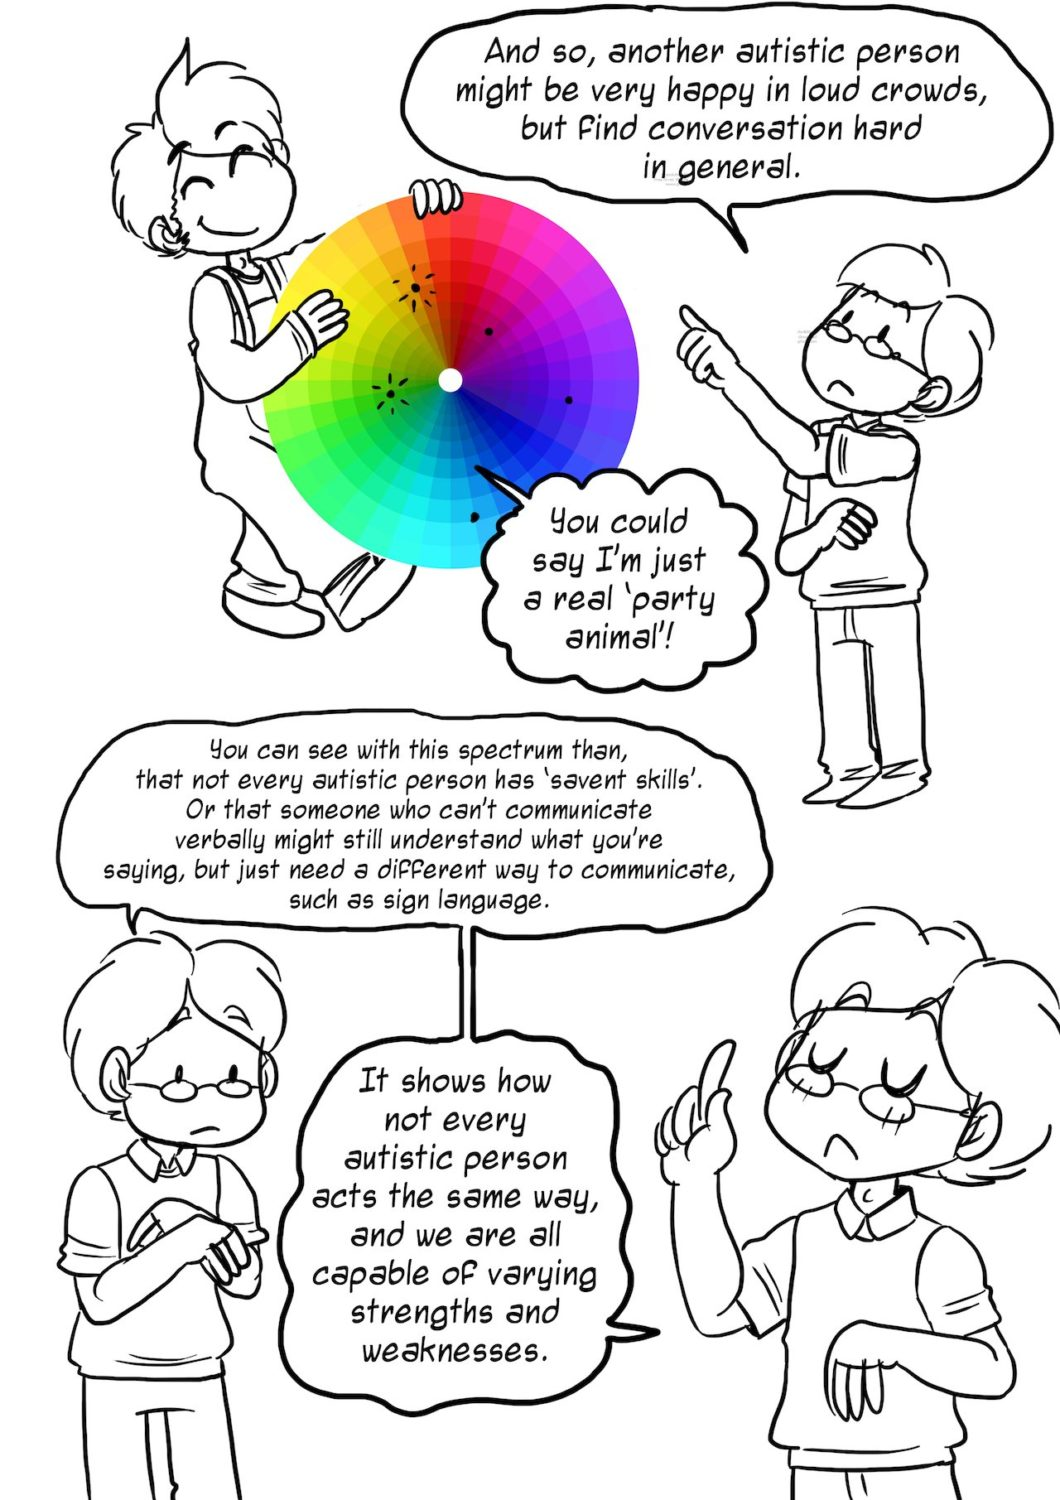 A cartoon to explain autistic spectrum conditions (ASC), courtesy of The Mighty.